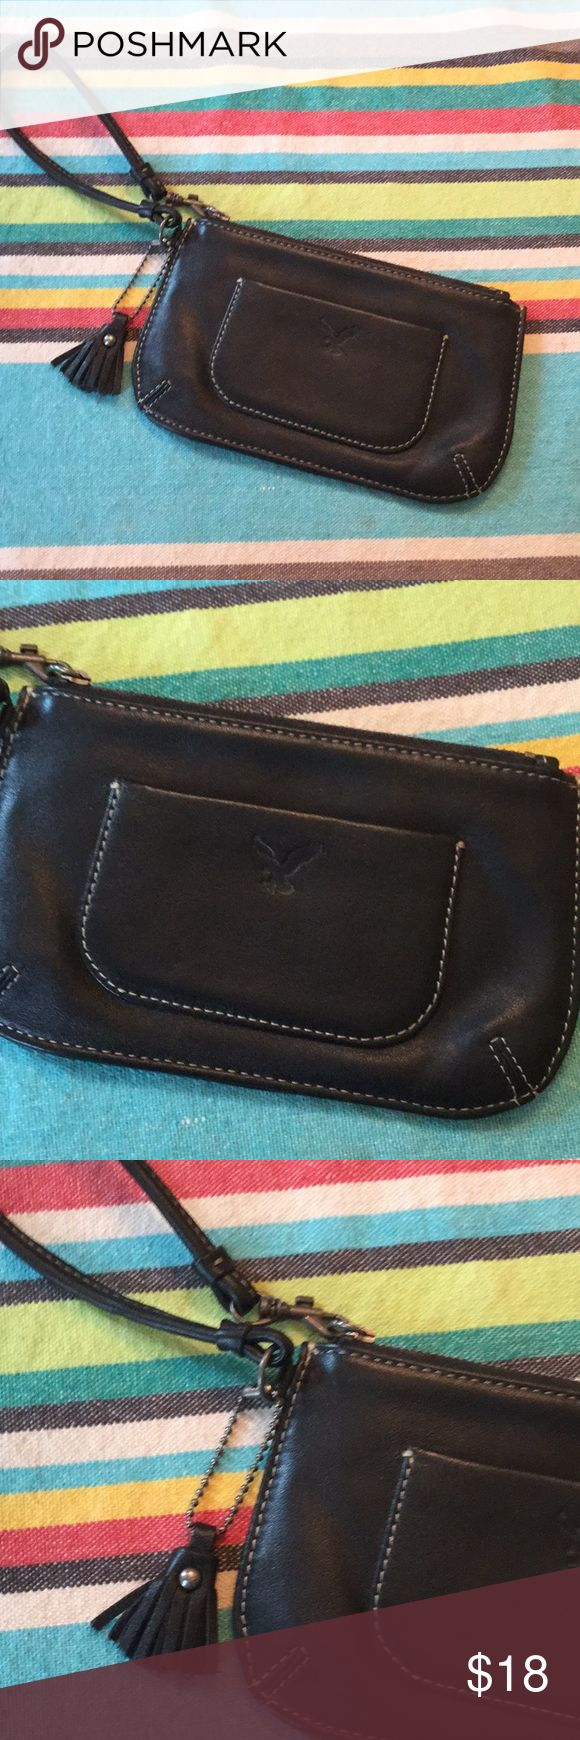 American EAGLE OUTFITTERS LEATHER WRISTLET Beautiful quality leather wristlet by American Eagle. New. Never used. American Eagle Outfitters Bags Clutches & Wristlets